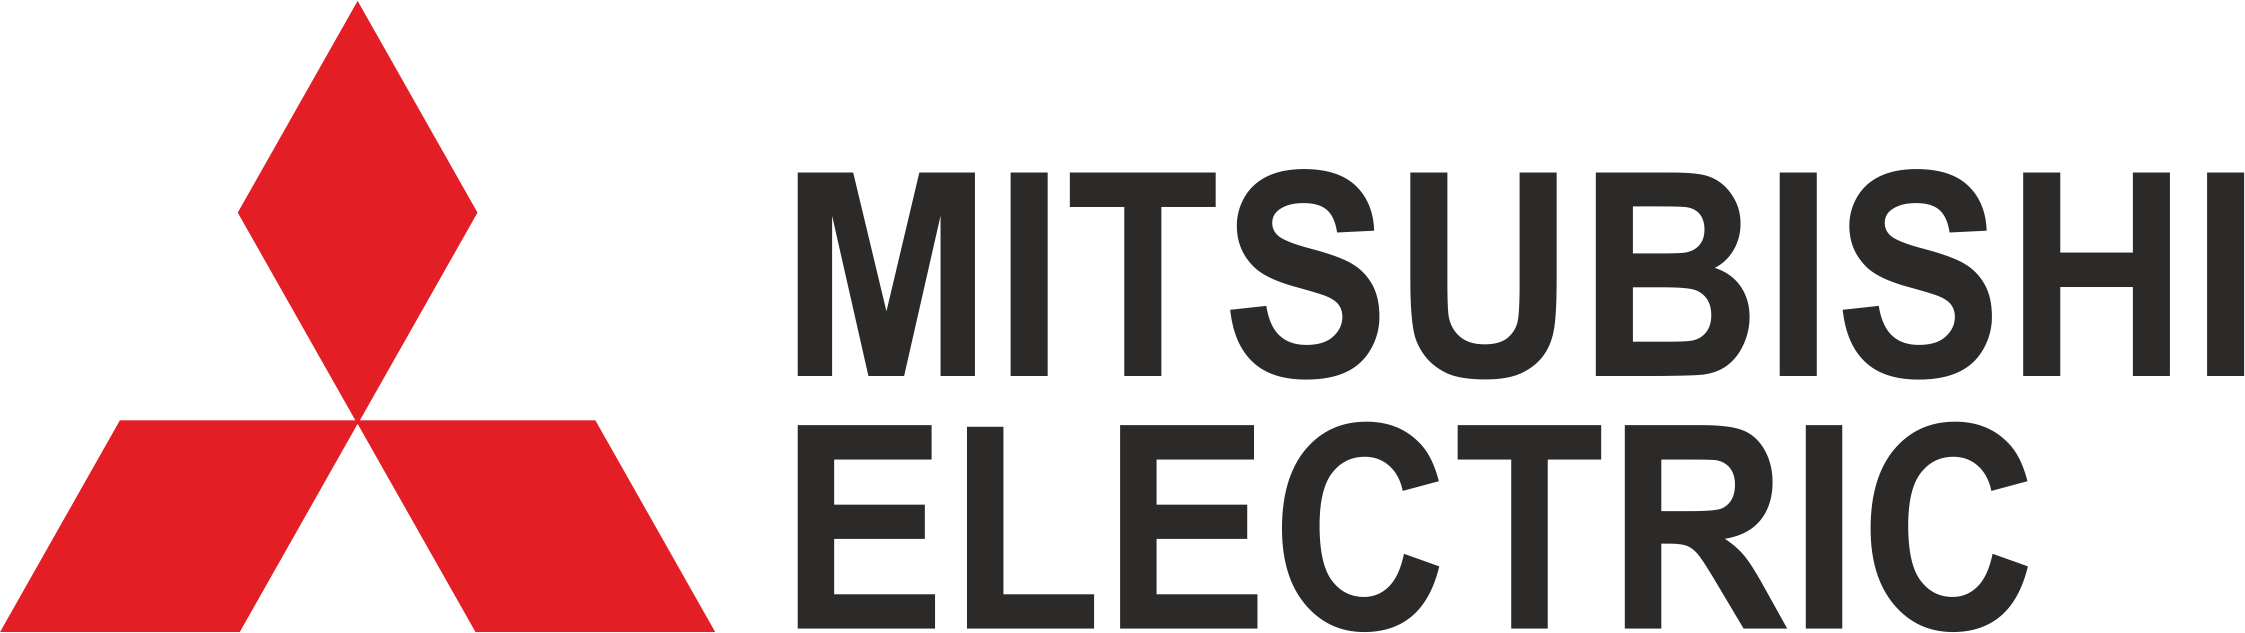 mitsubishi-electric.png